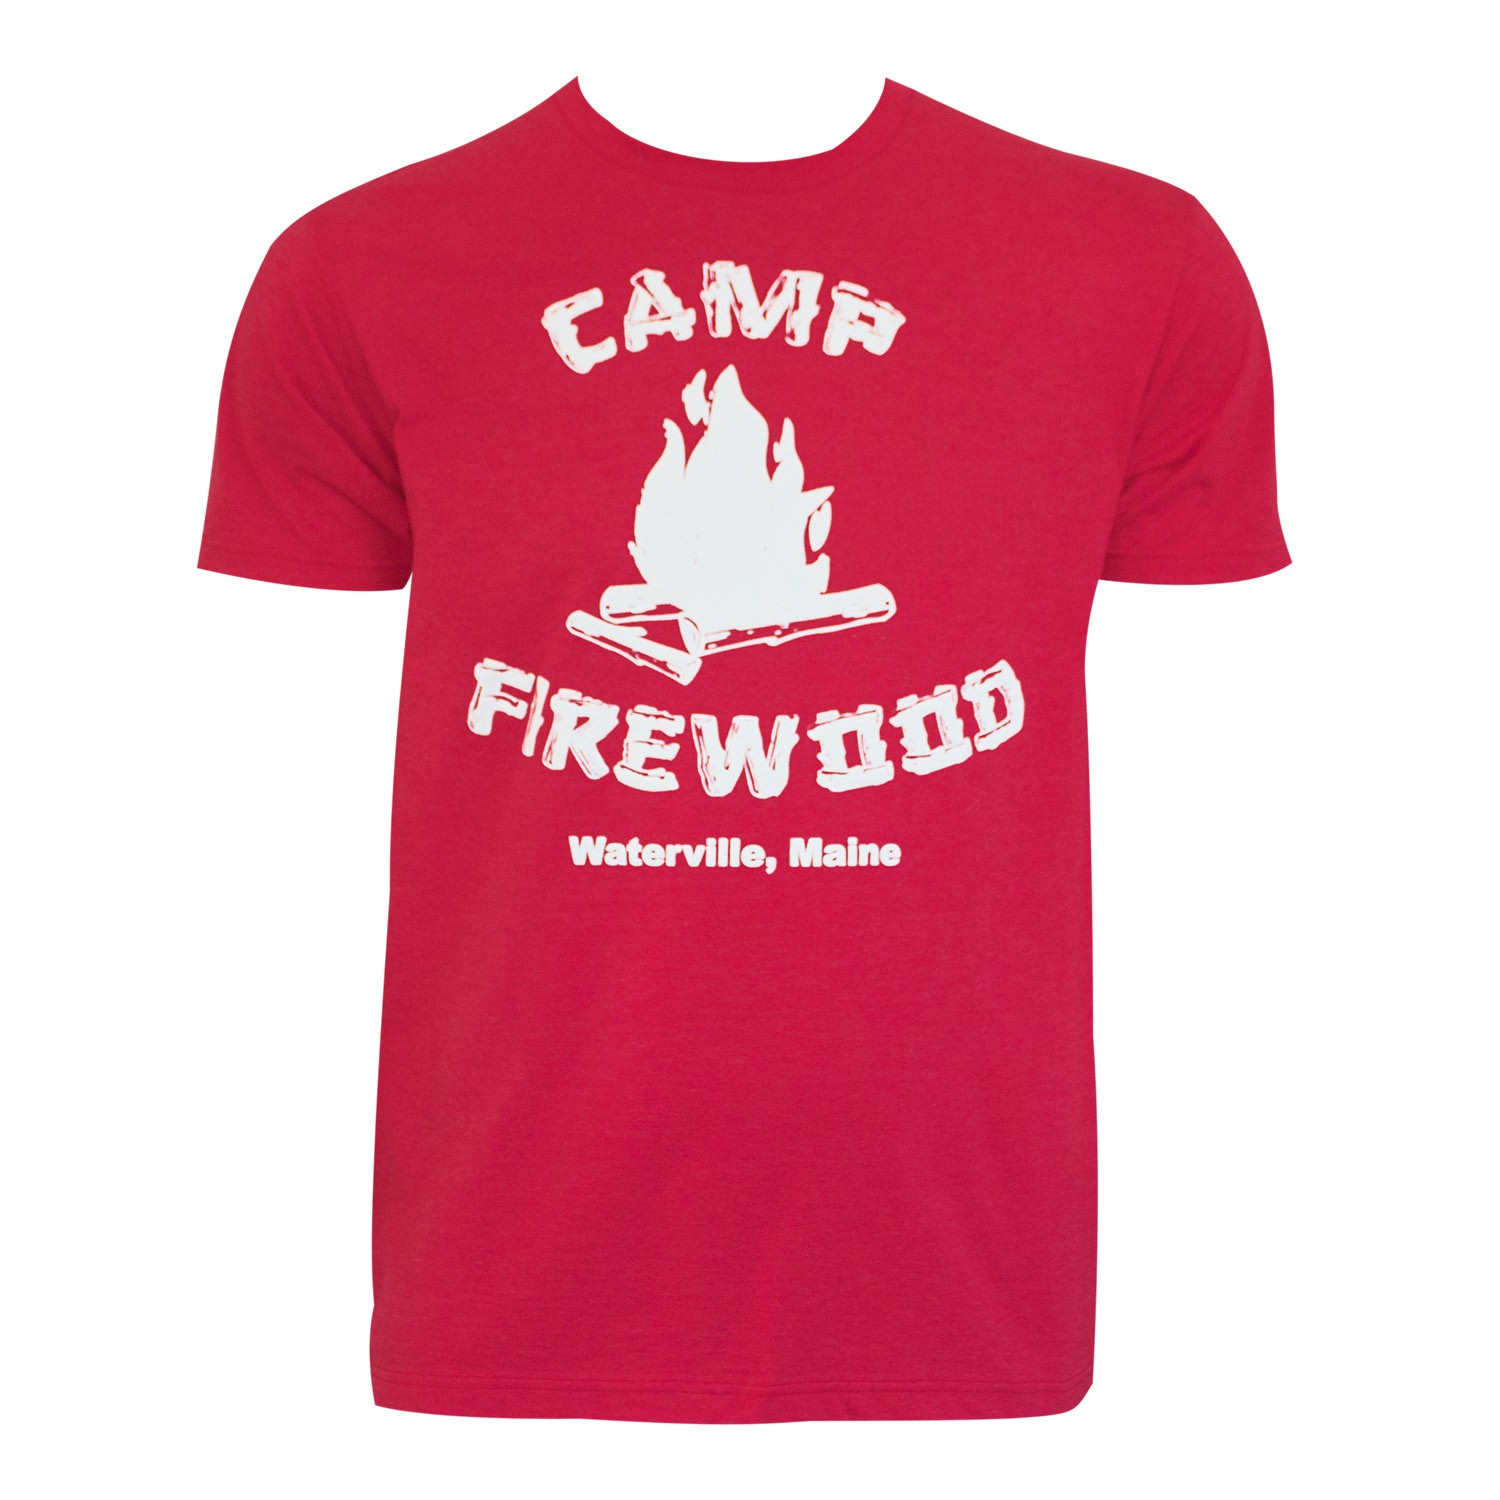 Wet Hot American Men's Red Camp Firewood T-Shirt